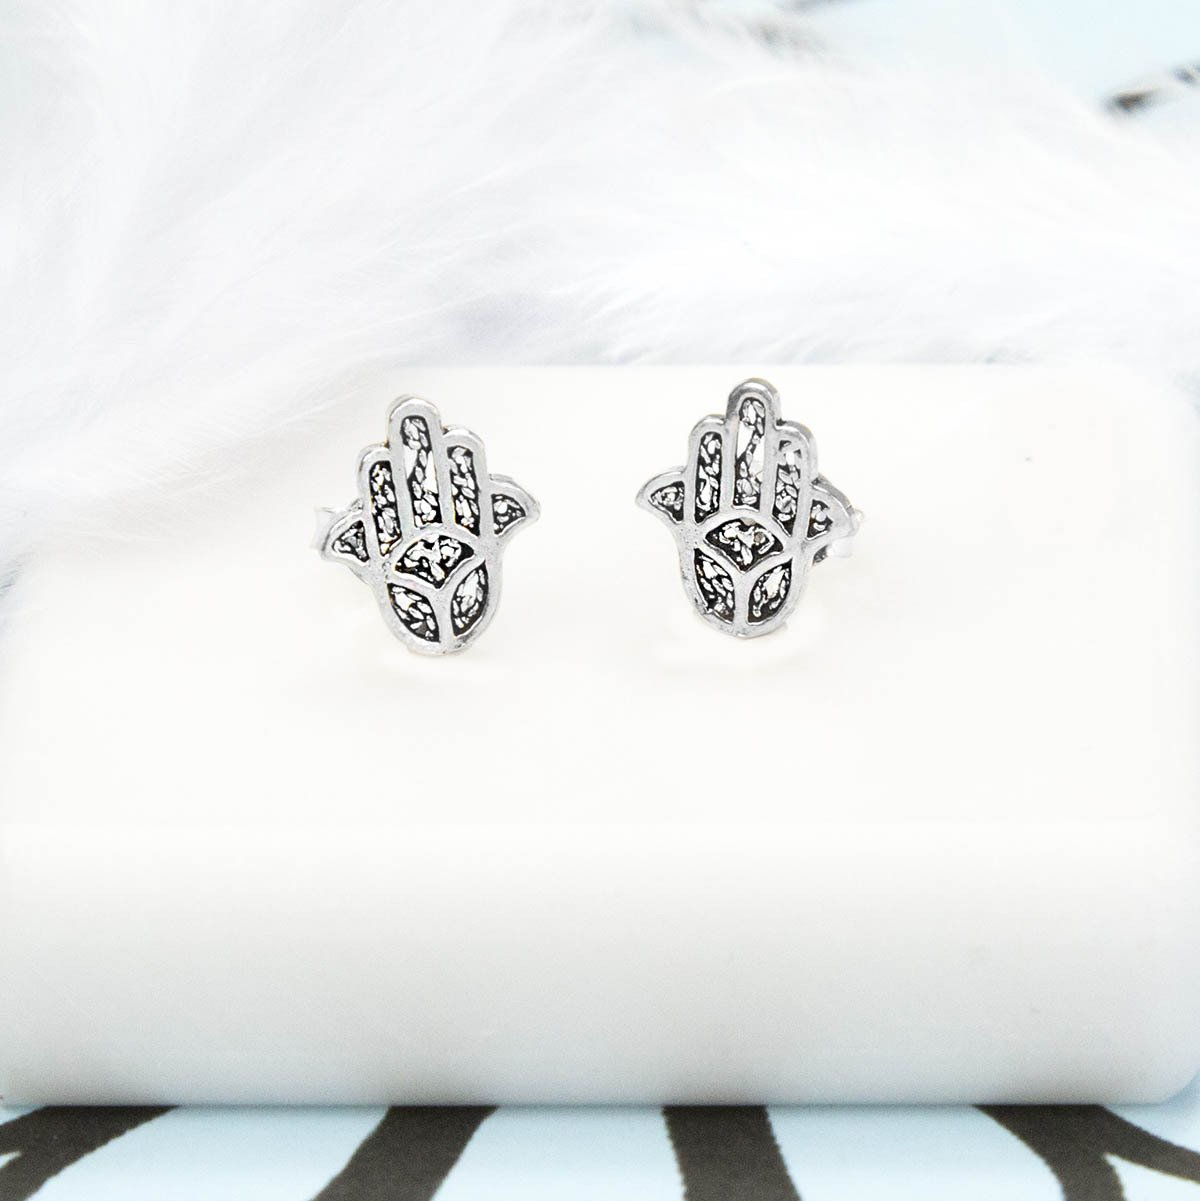 Pair of Silver Hamsa Hand Studs on white tile background and blue and black pattern paper with White Feather